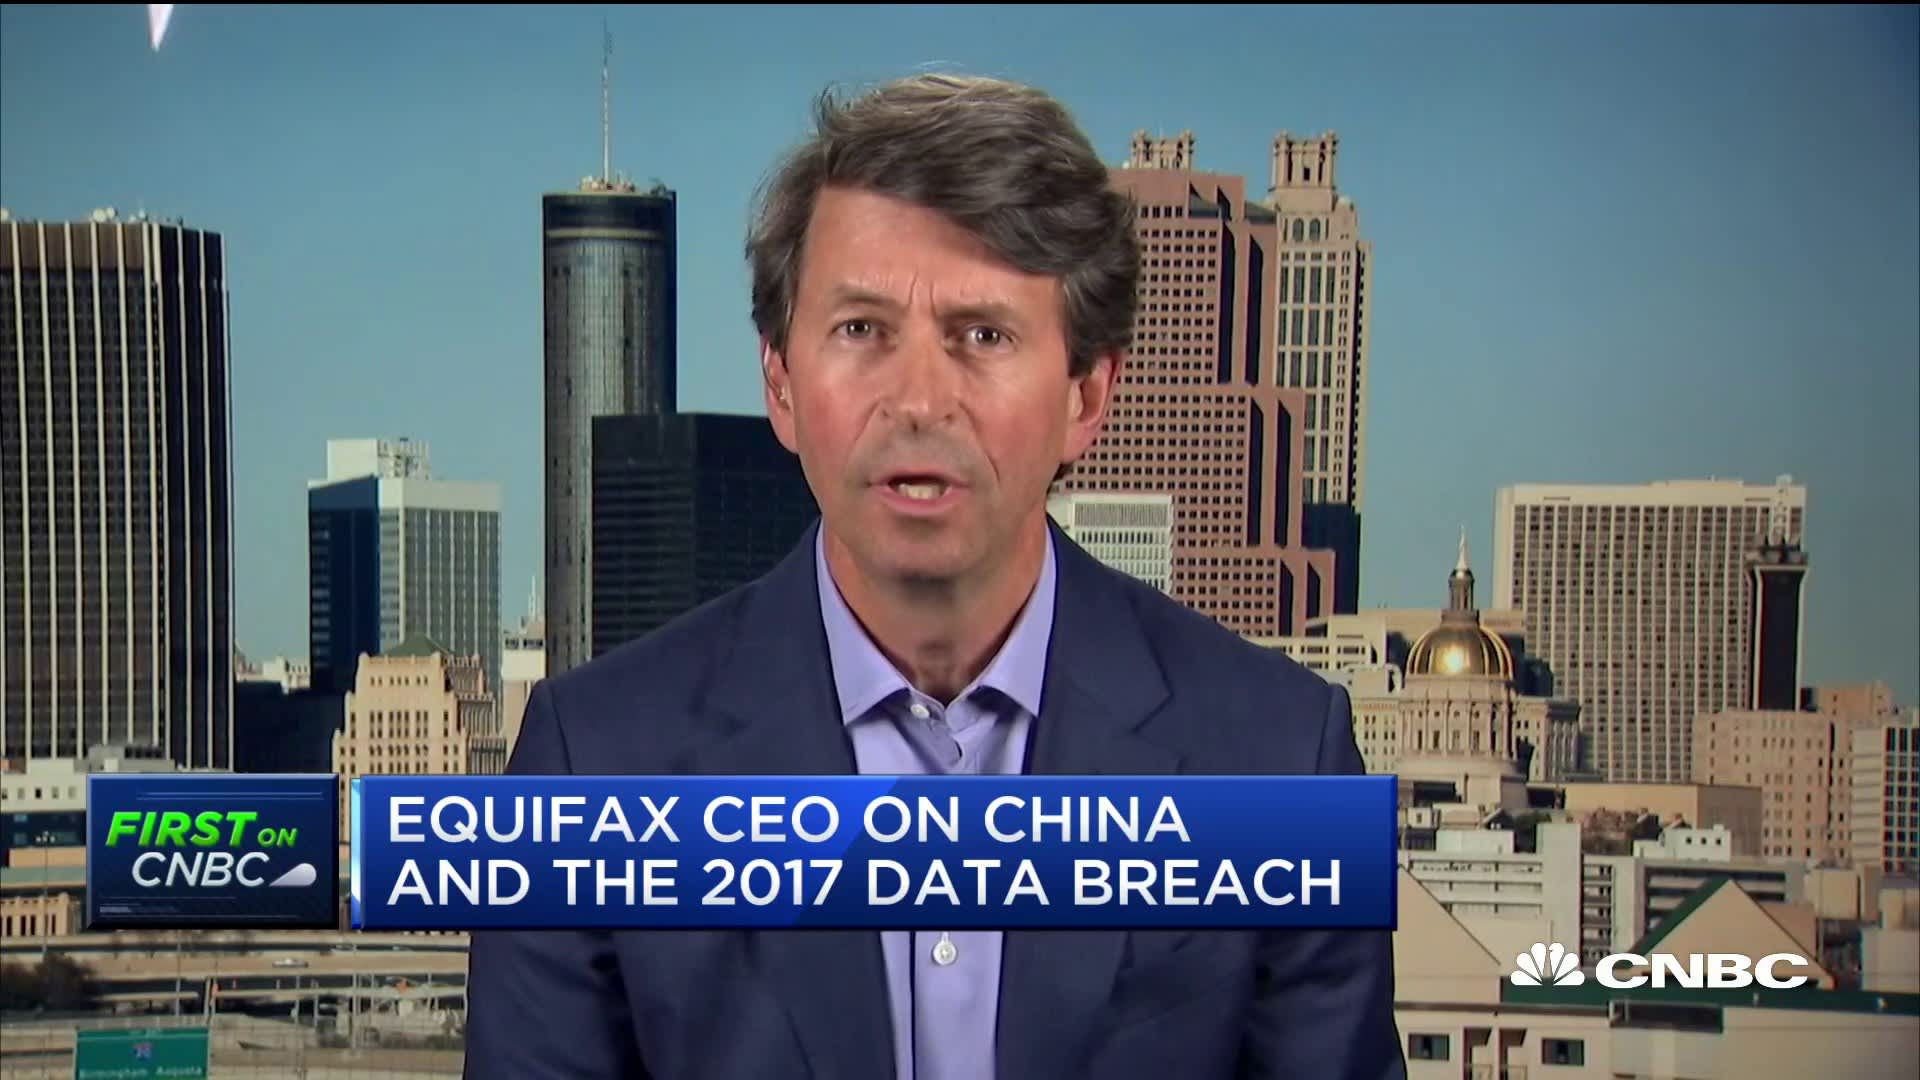 Equifax CEO Mark Begor on Chinese hackers